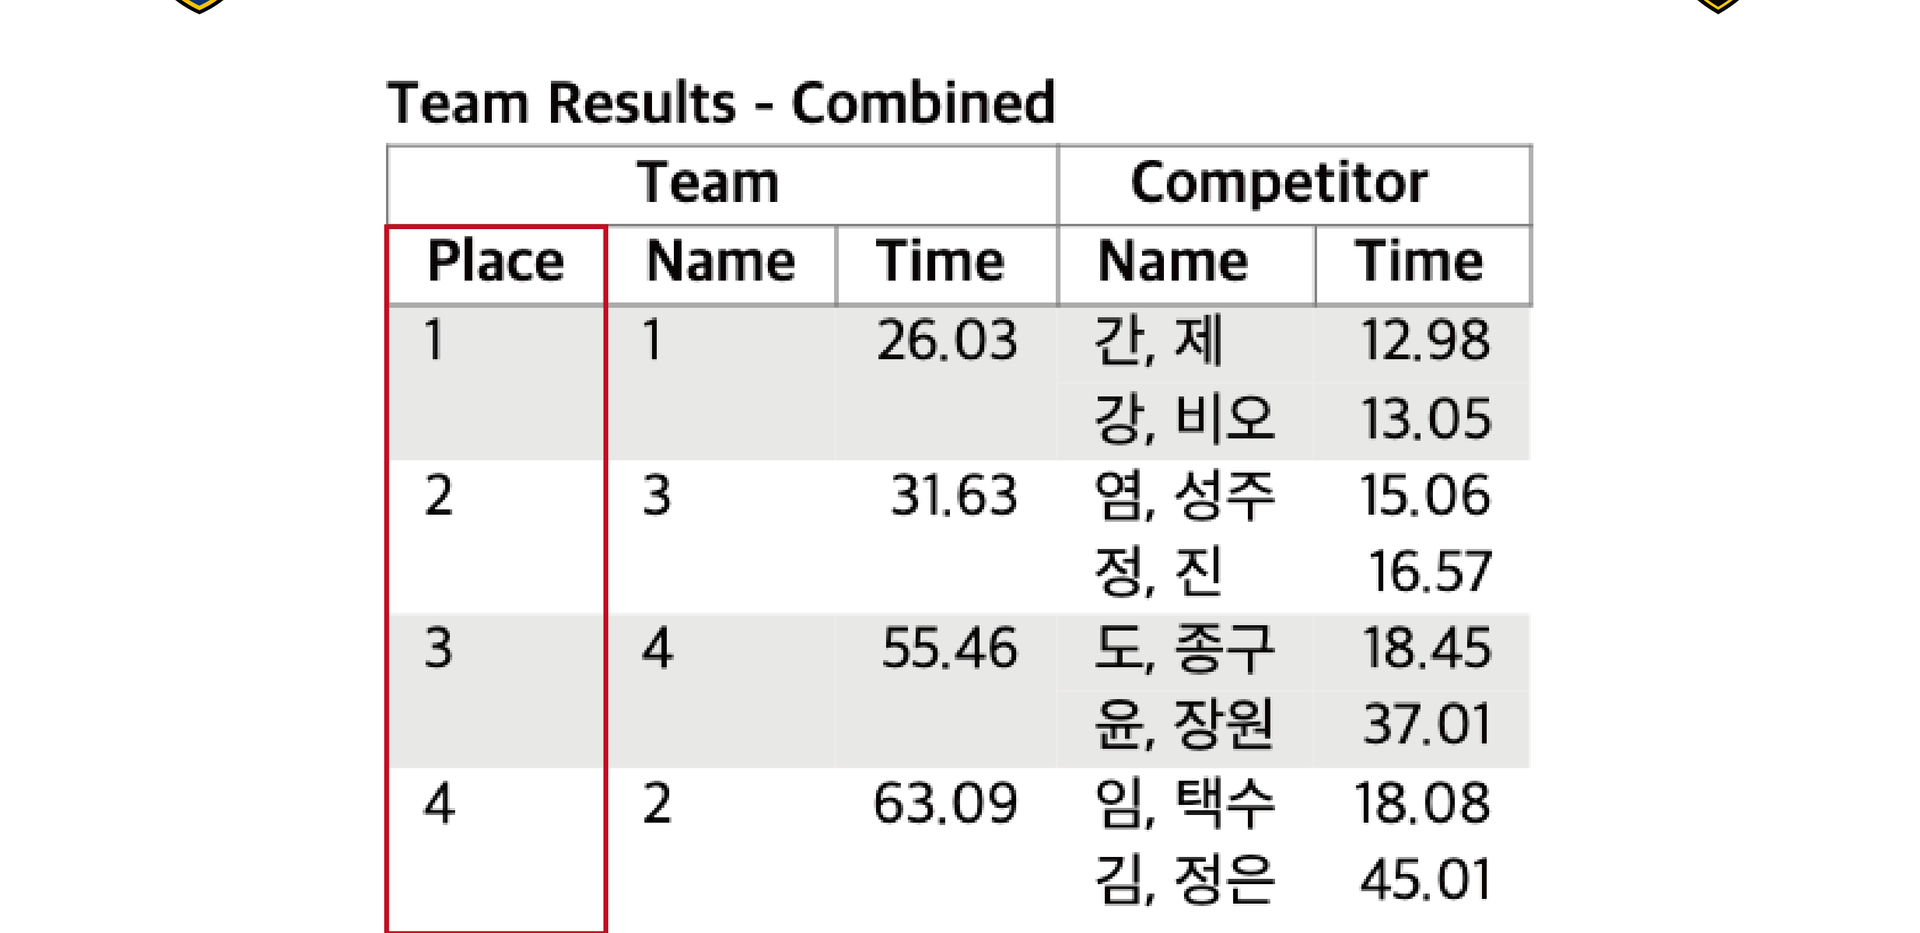 Team Results